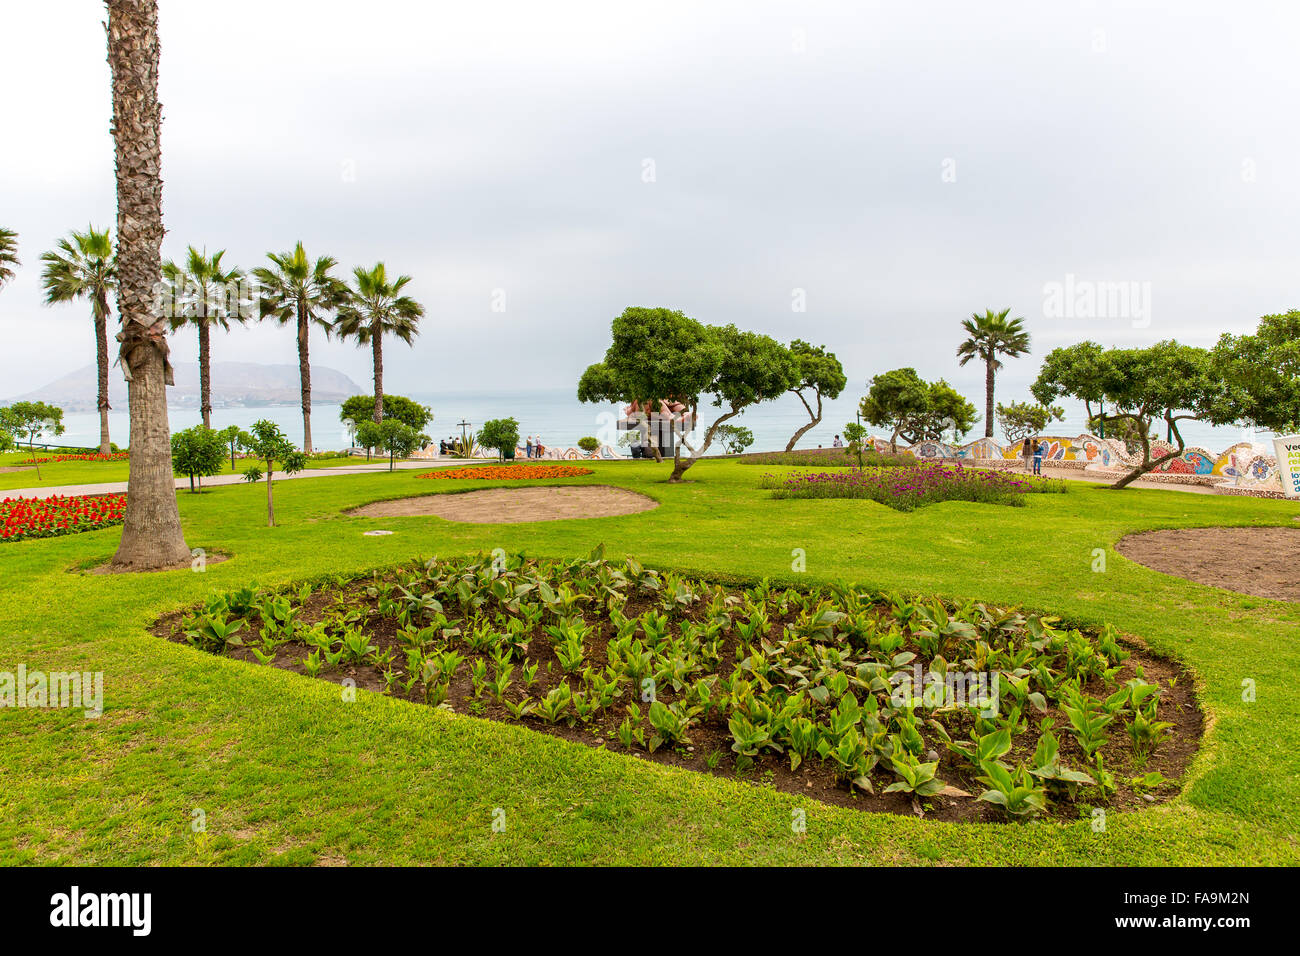 Upscale hotel and Inviting Courtyard and garden on lake Titikaka, Peru in South America - Stock Image